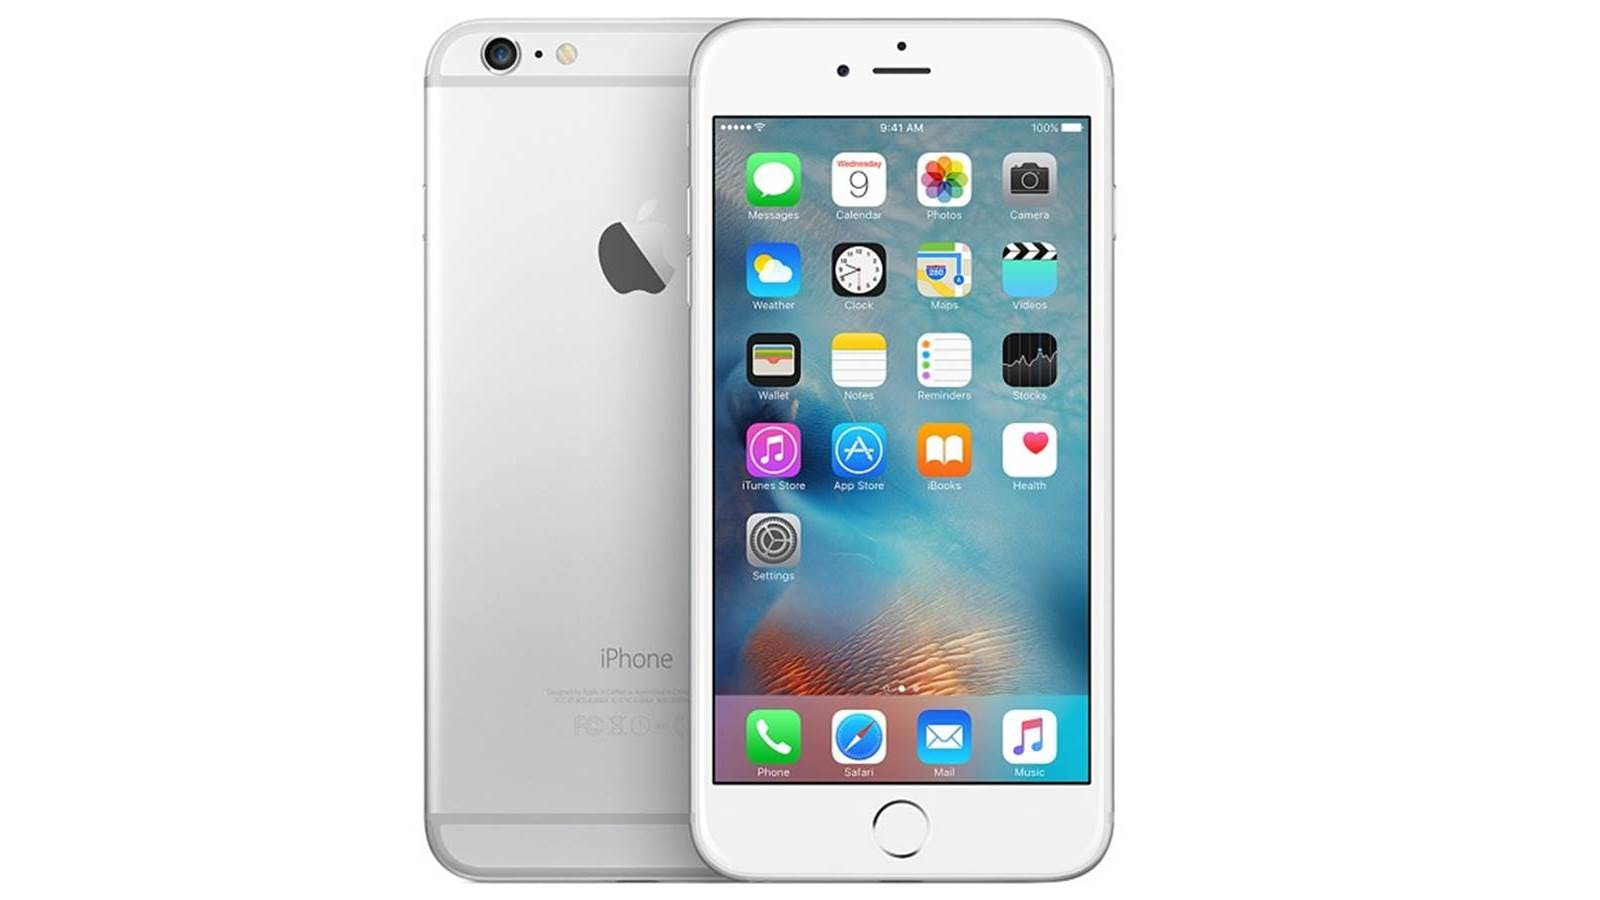 Home :: Smart Tech & Phones :: Phones & Phablets :: iPhones :: Apple iPhone  6 Plus 16GB - Silver (MGA92MY/A) (Demo unit)